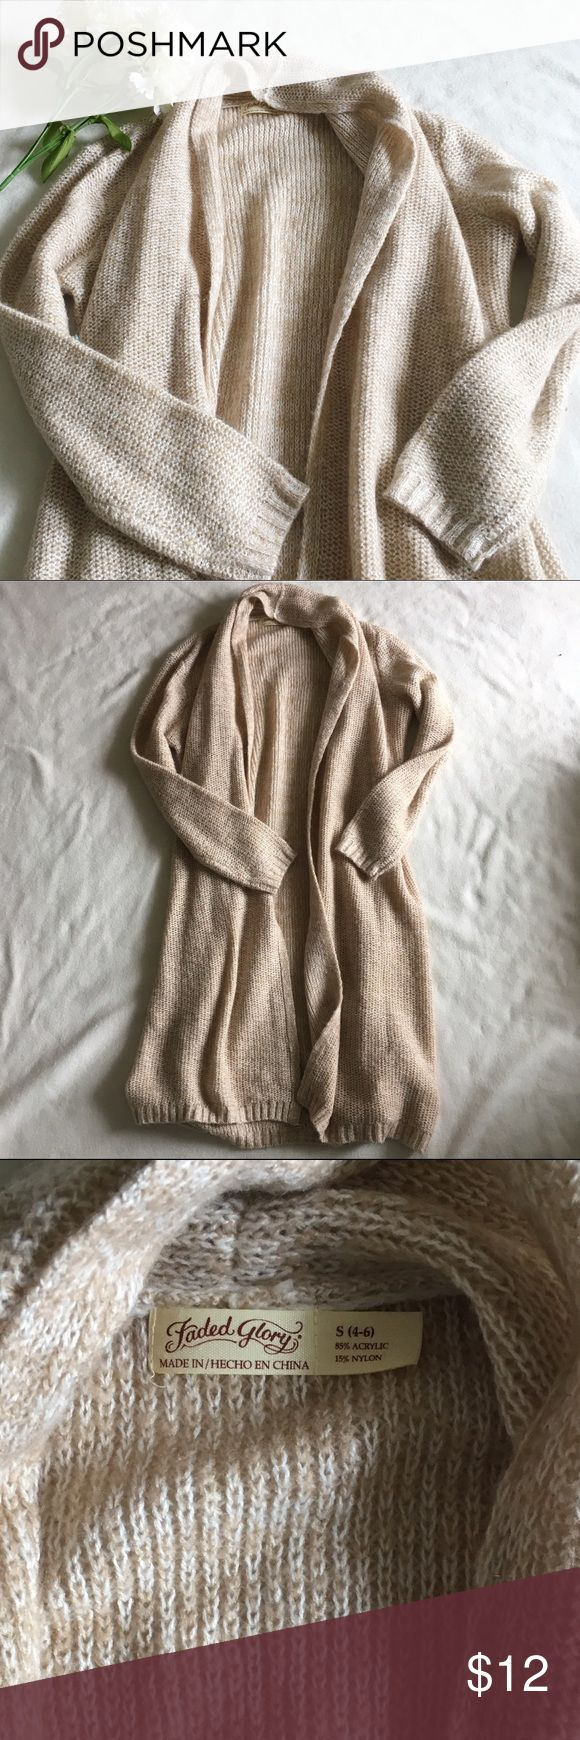 Faded Glory Soft Maxi Cardigan In like new condition. This cardi is extra long and extra soft! Faded Glory Sweaters Cardigans